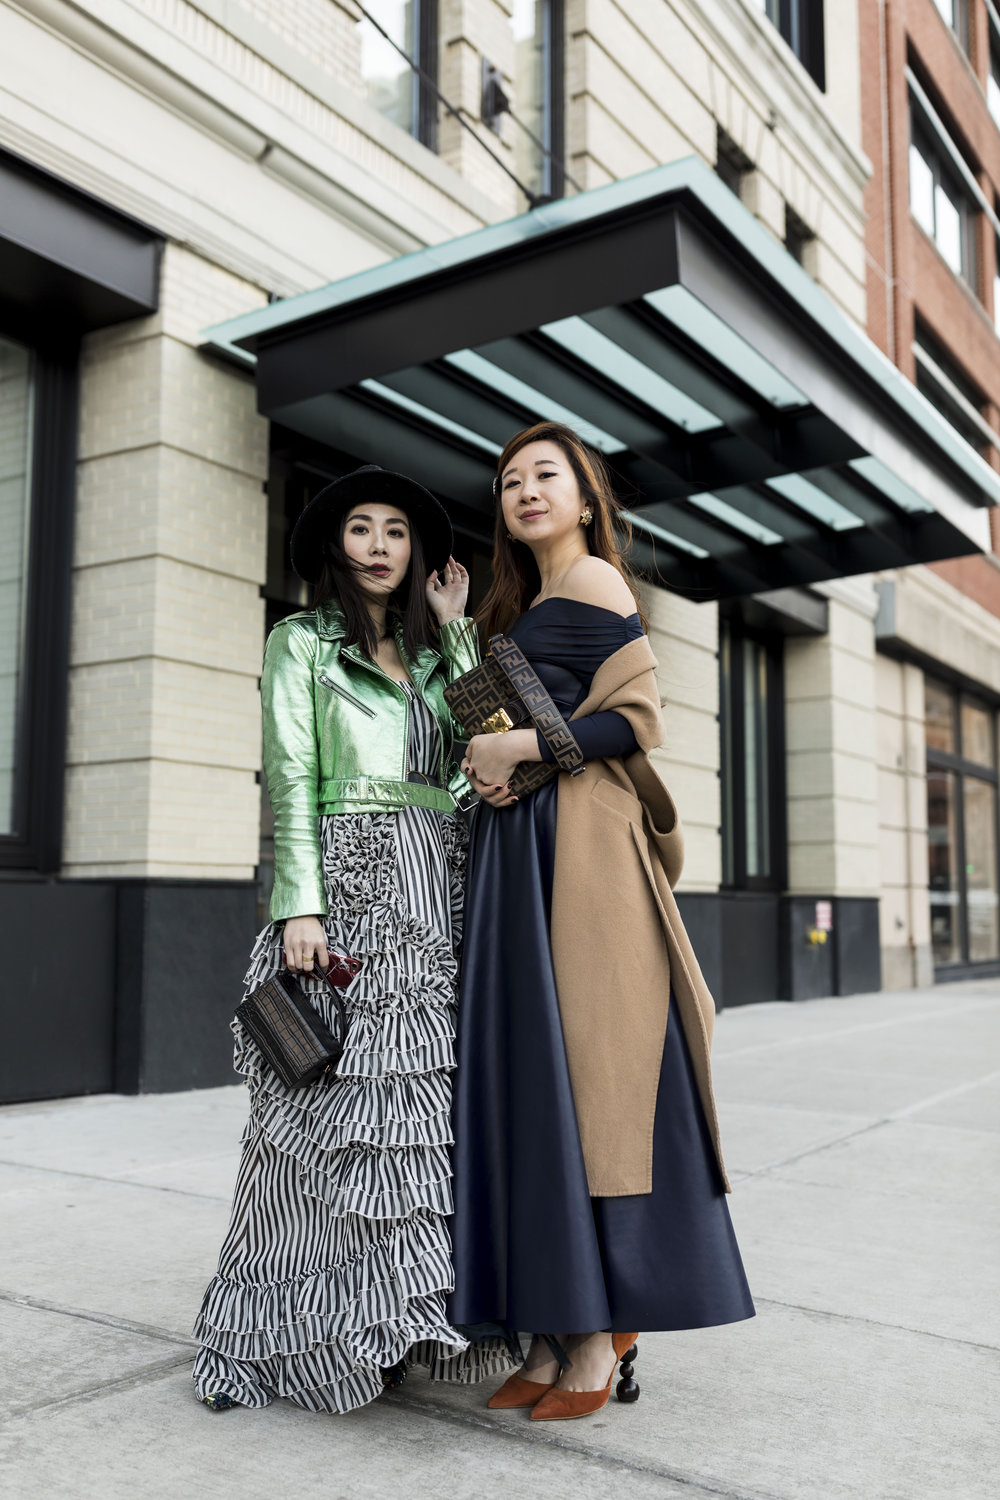 With my gal pal Lisa from  @stylevoila  outside Spring Studios. Photo by Ashley Gallerani.